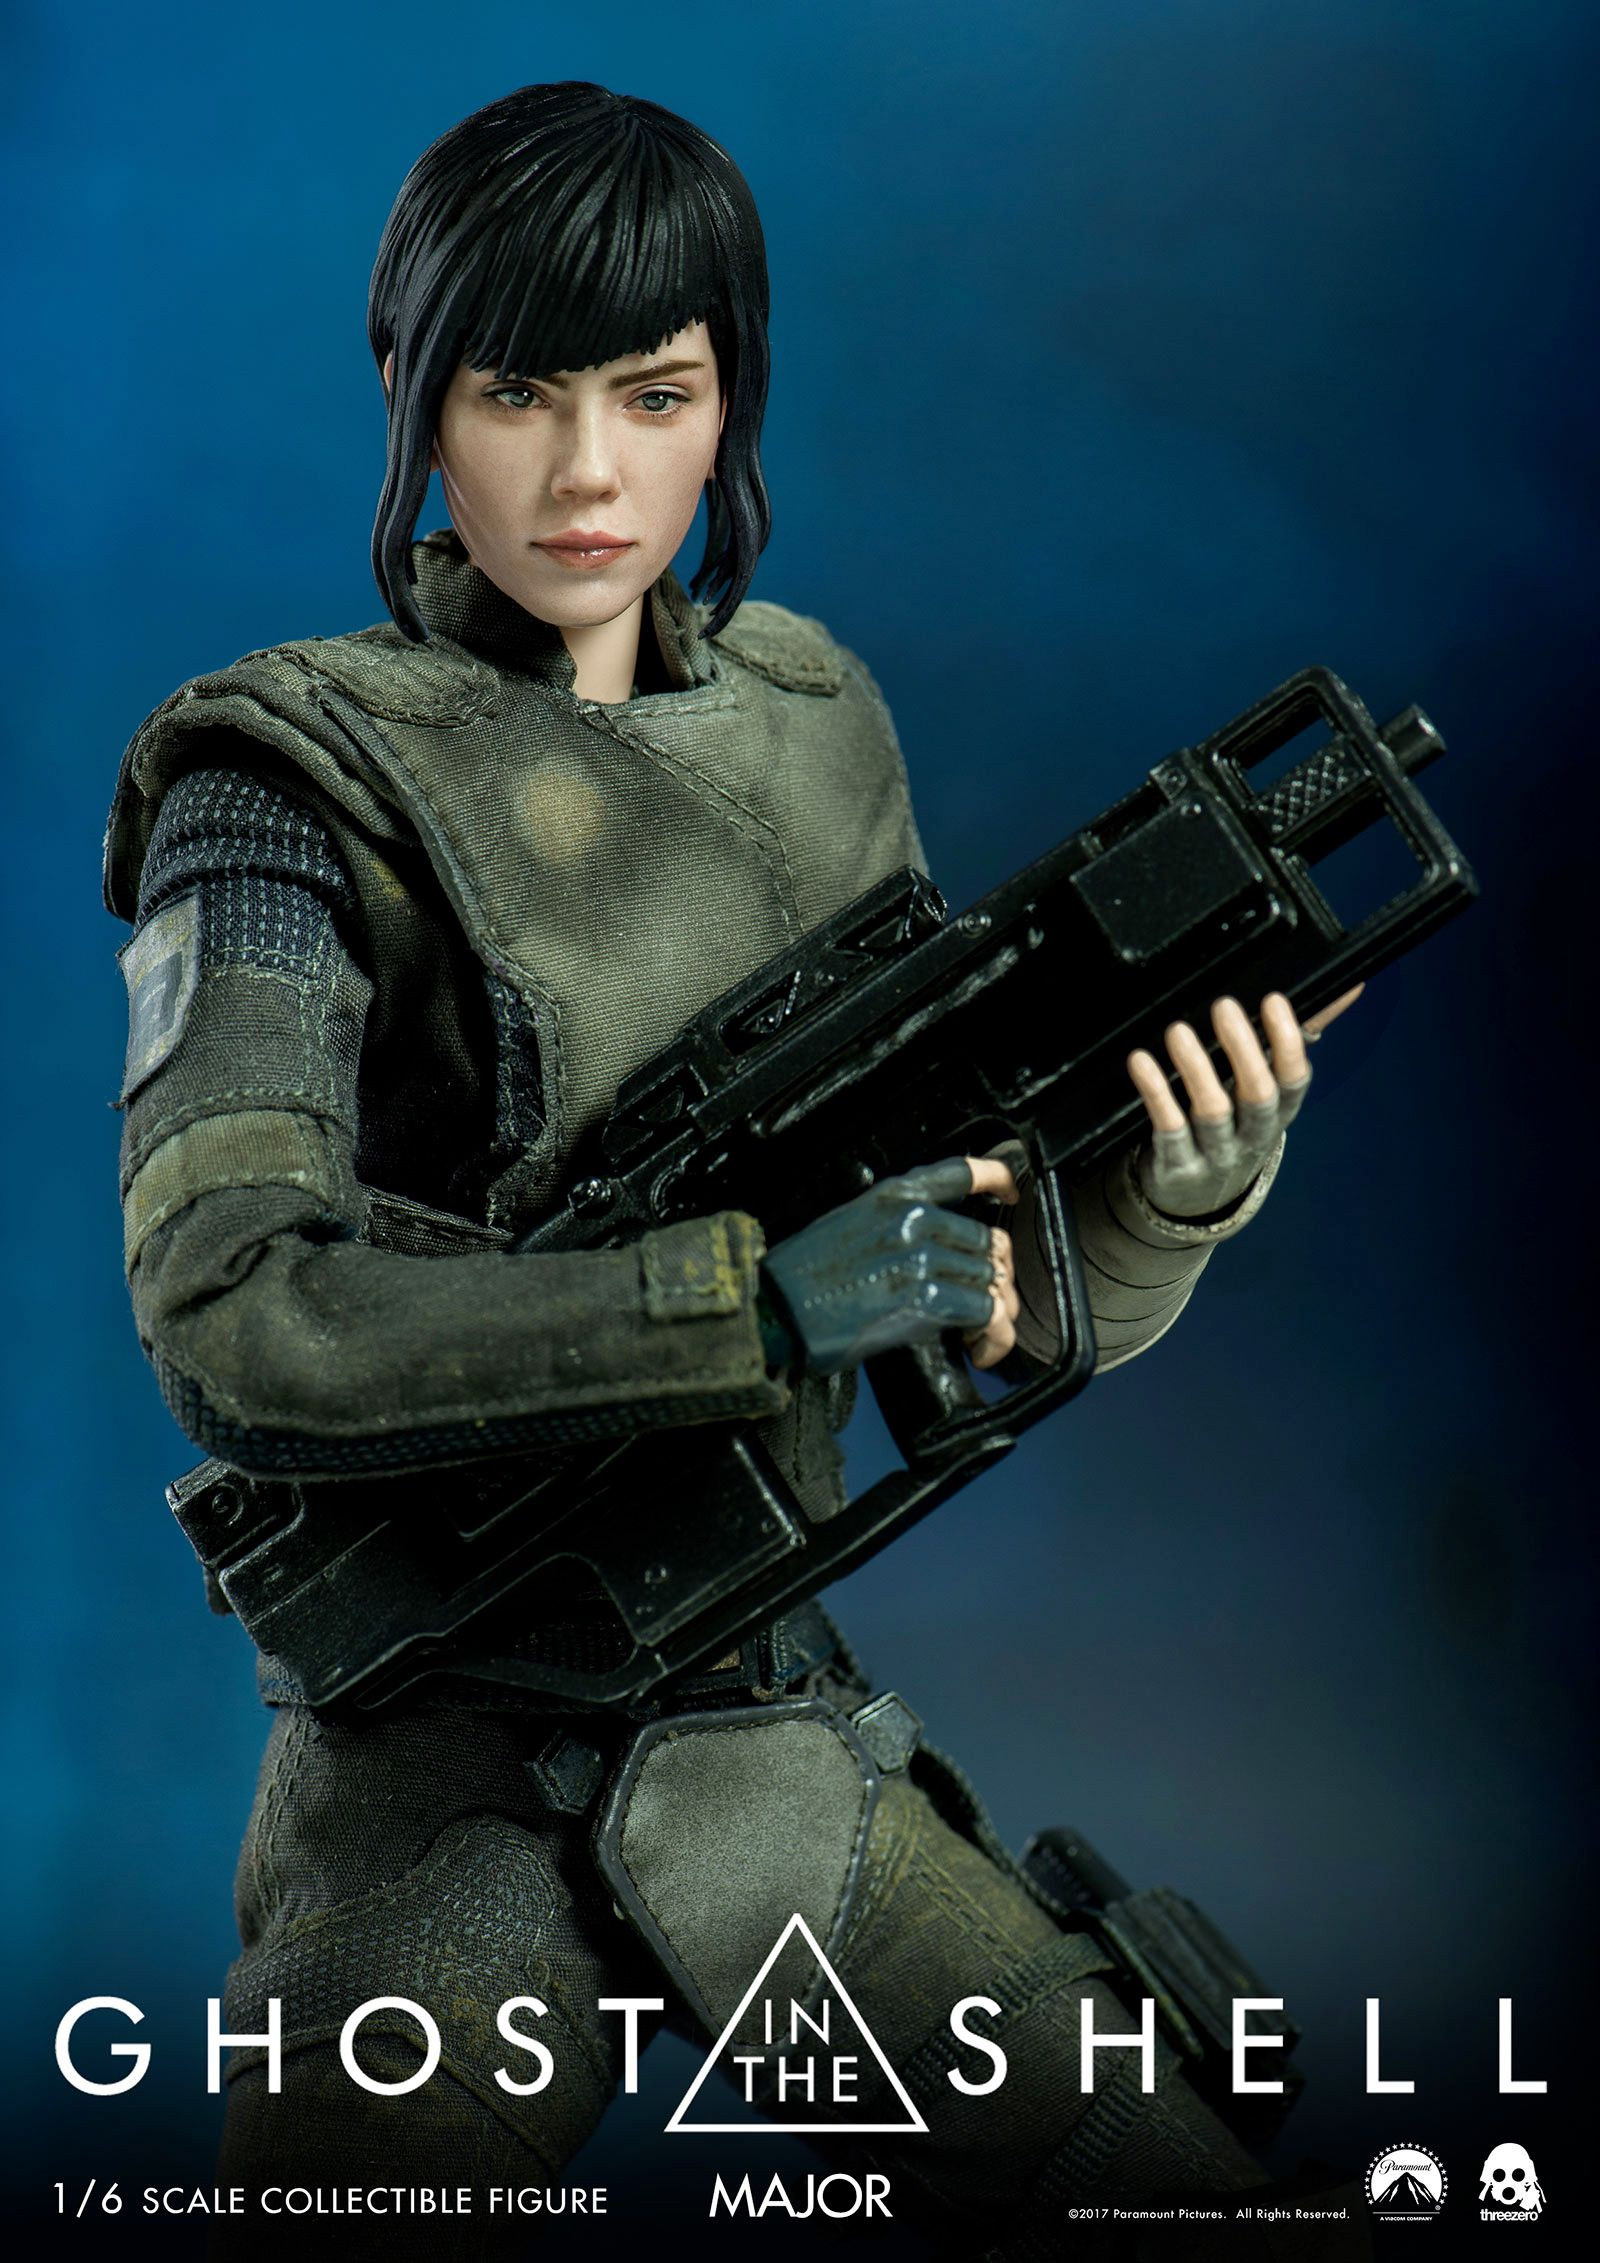 Ghost-In-The-Shell-MAJOR-Collectible-Action-Figure-04